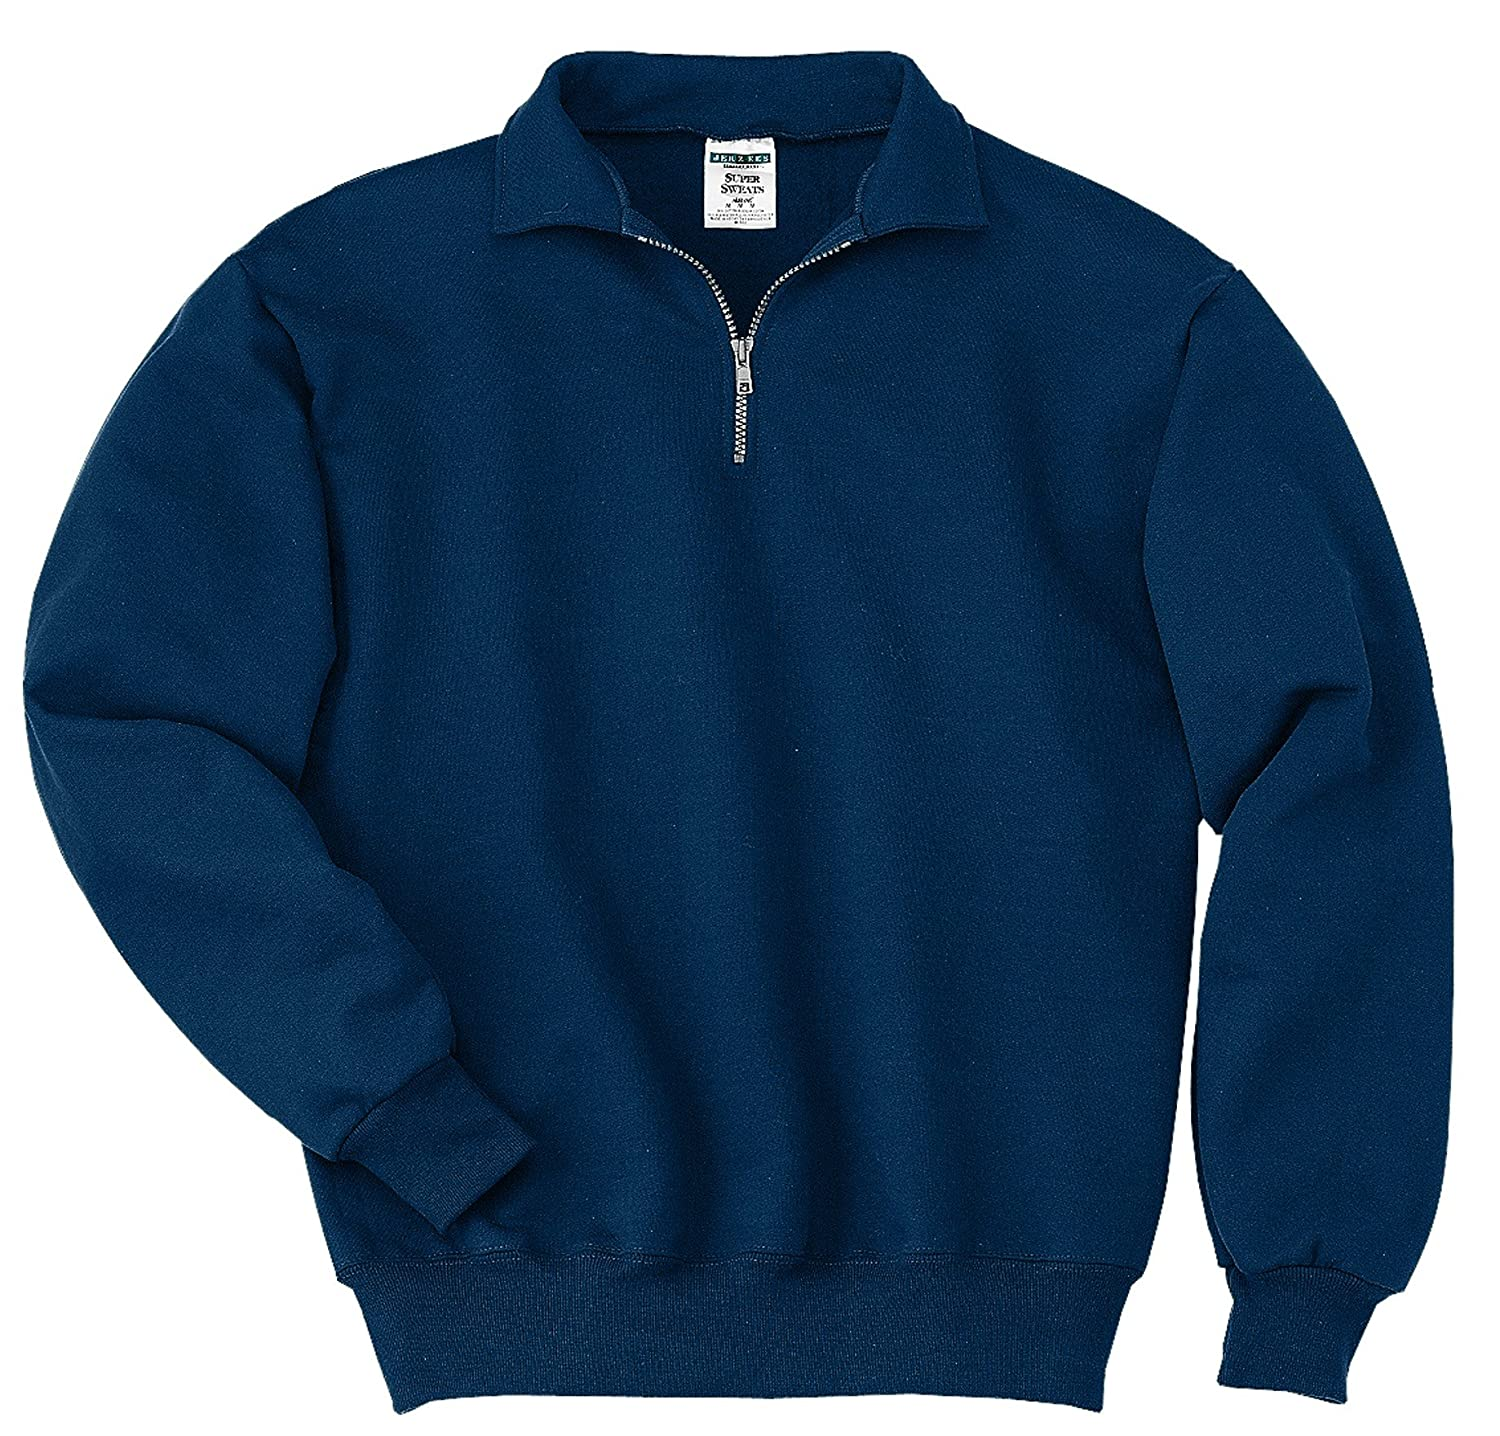 Jerzees Mens SUPER SWEATS 1/4-Zip Sweatshirt with Cadet Collar 4528M